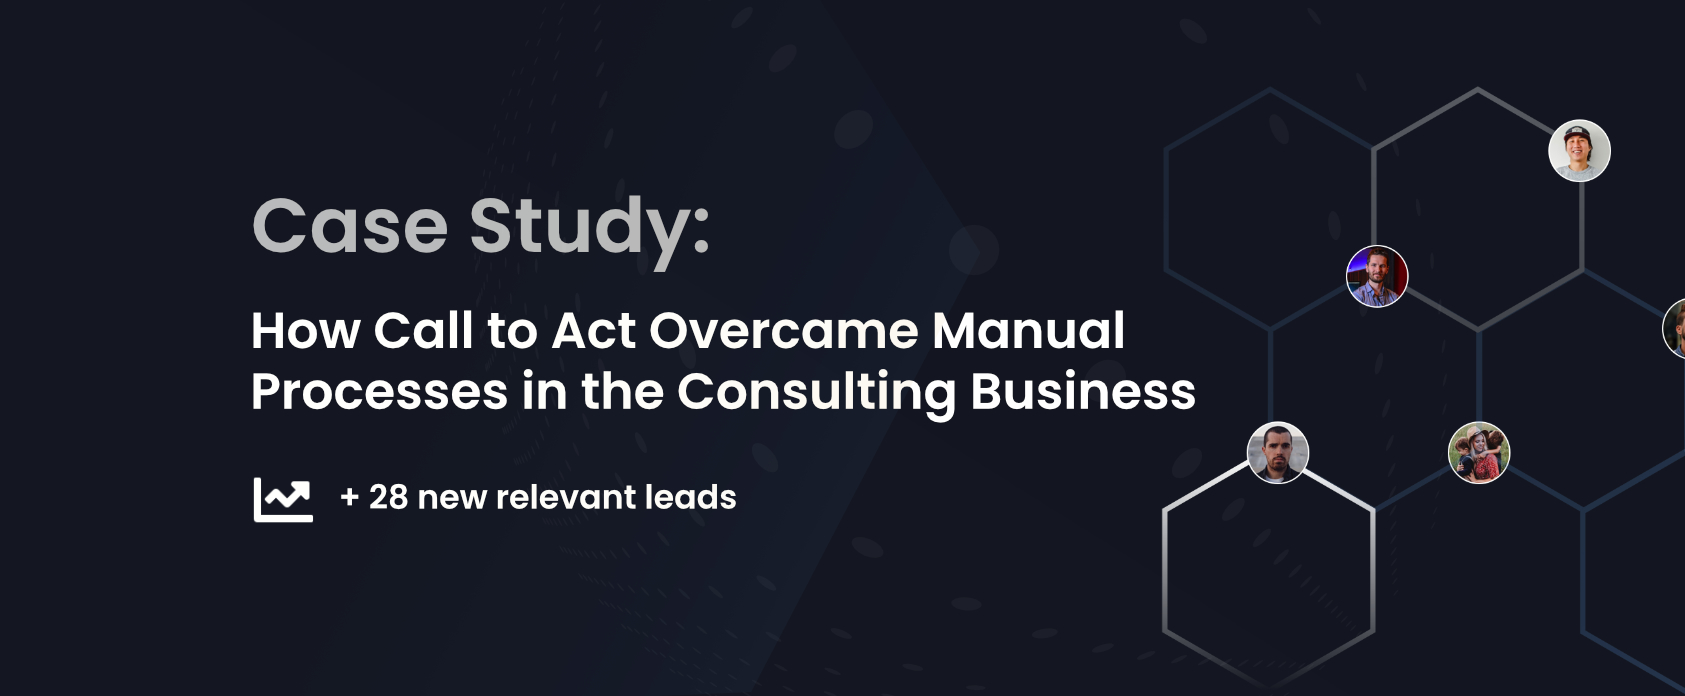 How Call to Act Overcame Manual Processes in the Consulting Business